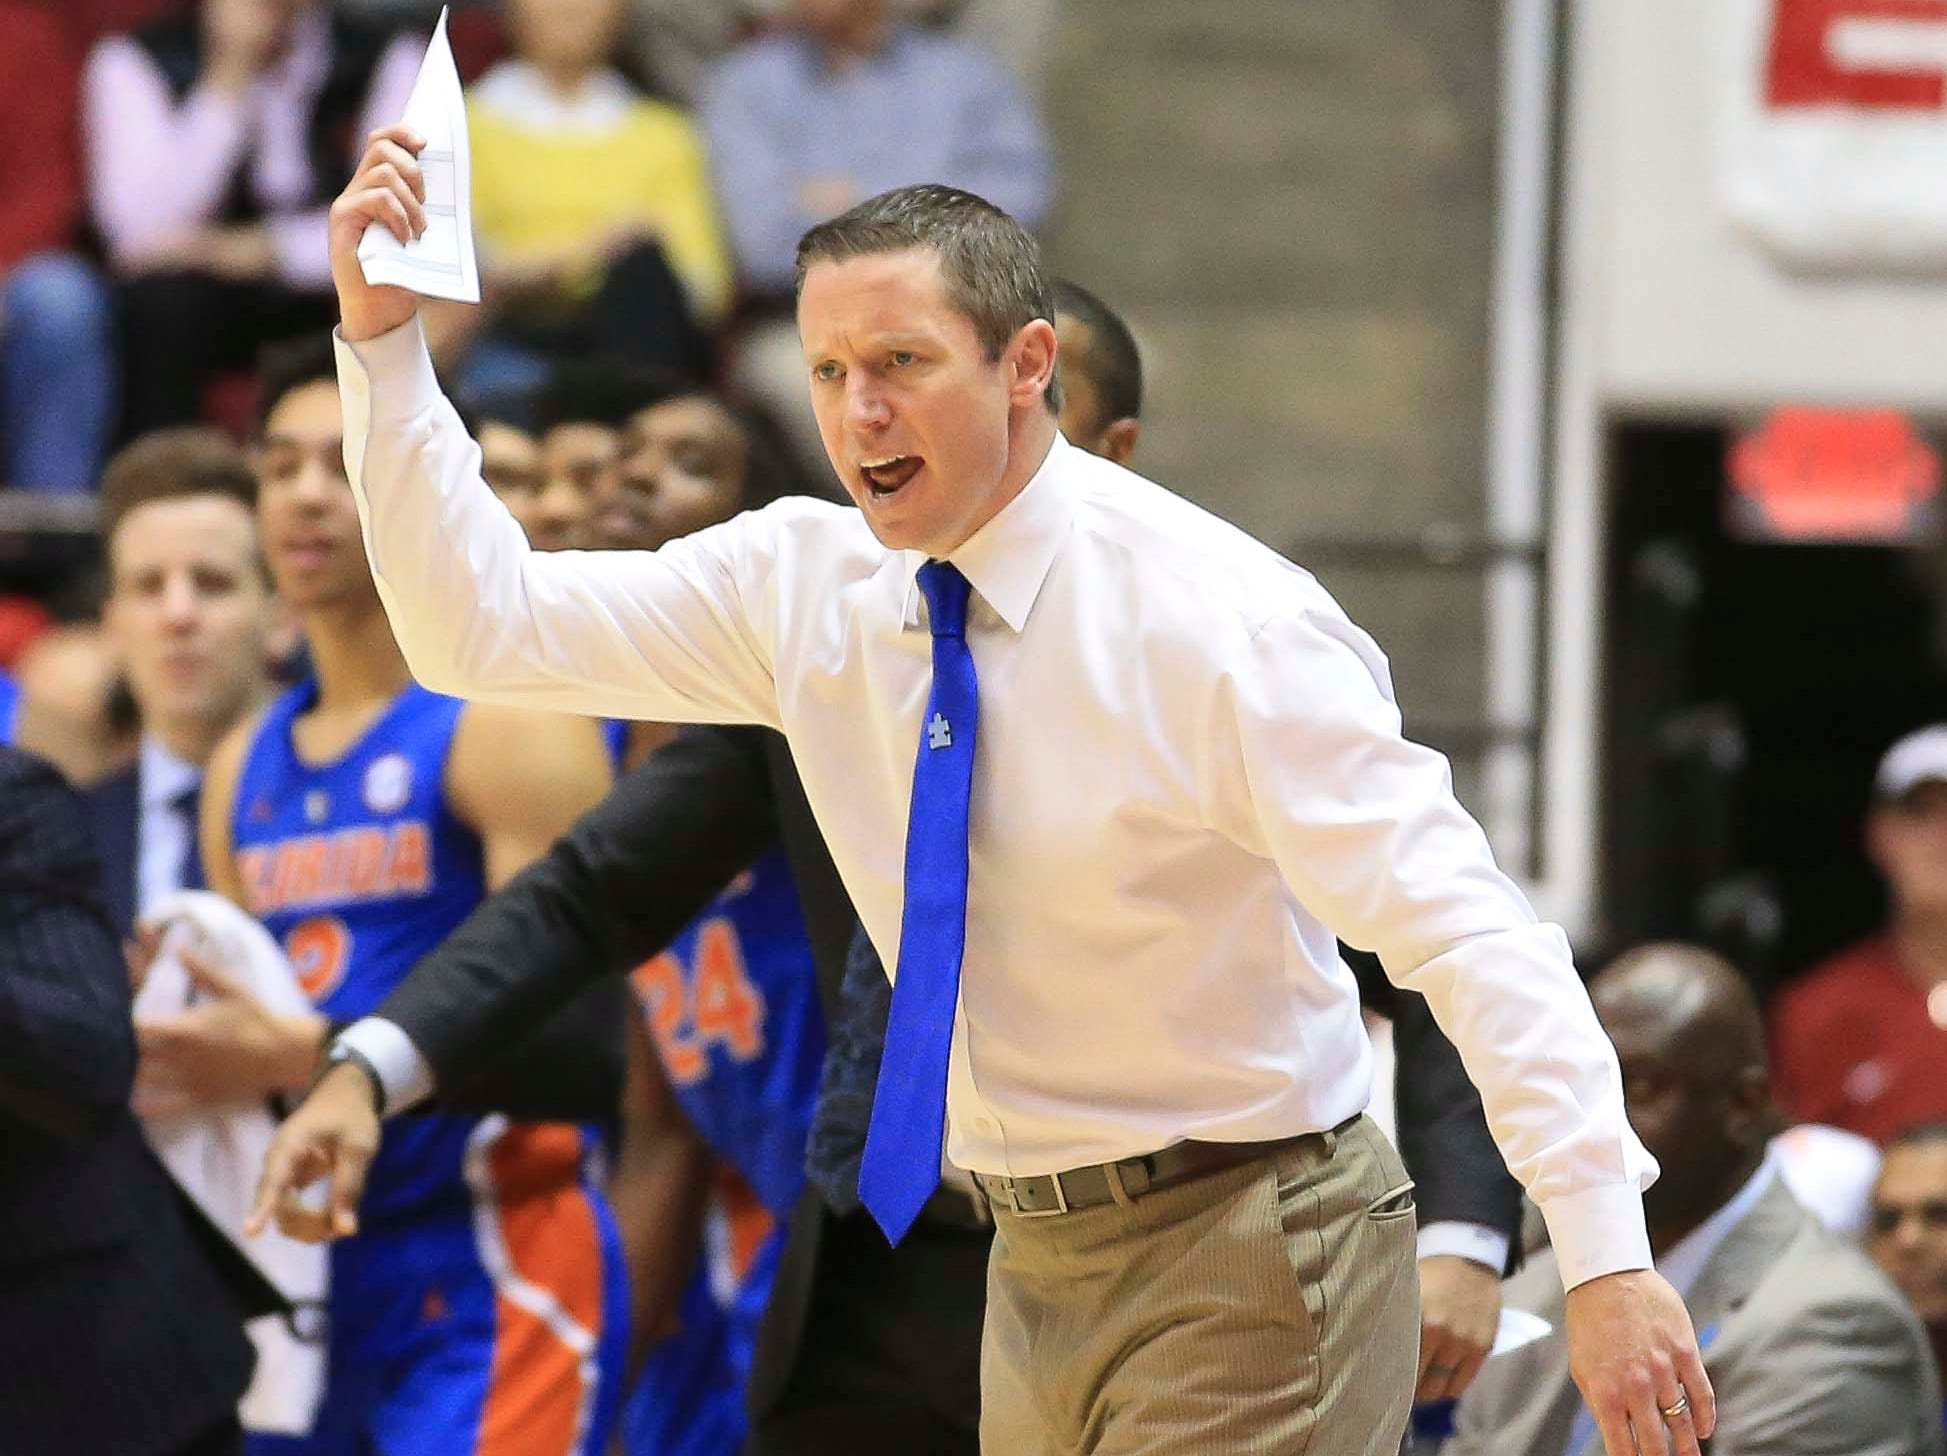 Feb 16, 2019; Tuscaloosa, AL, USA; Florida Gators head coach Mike White reacts to his teams play during the first half against Alabama Crimson Tide at Coleman Coliseum. Mandatory Credit: Marvin Gentry-USA TODAY Sports